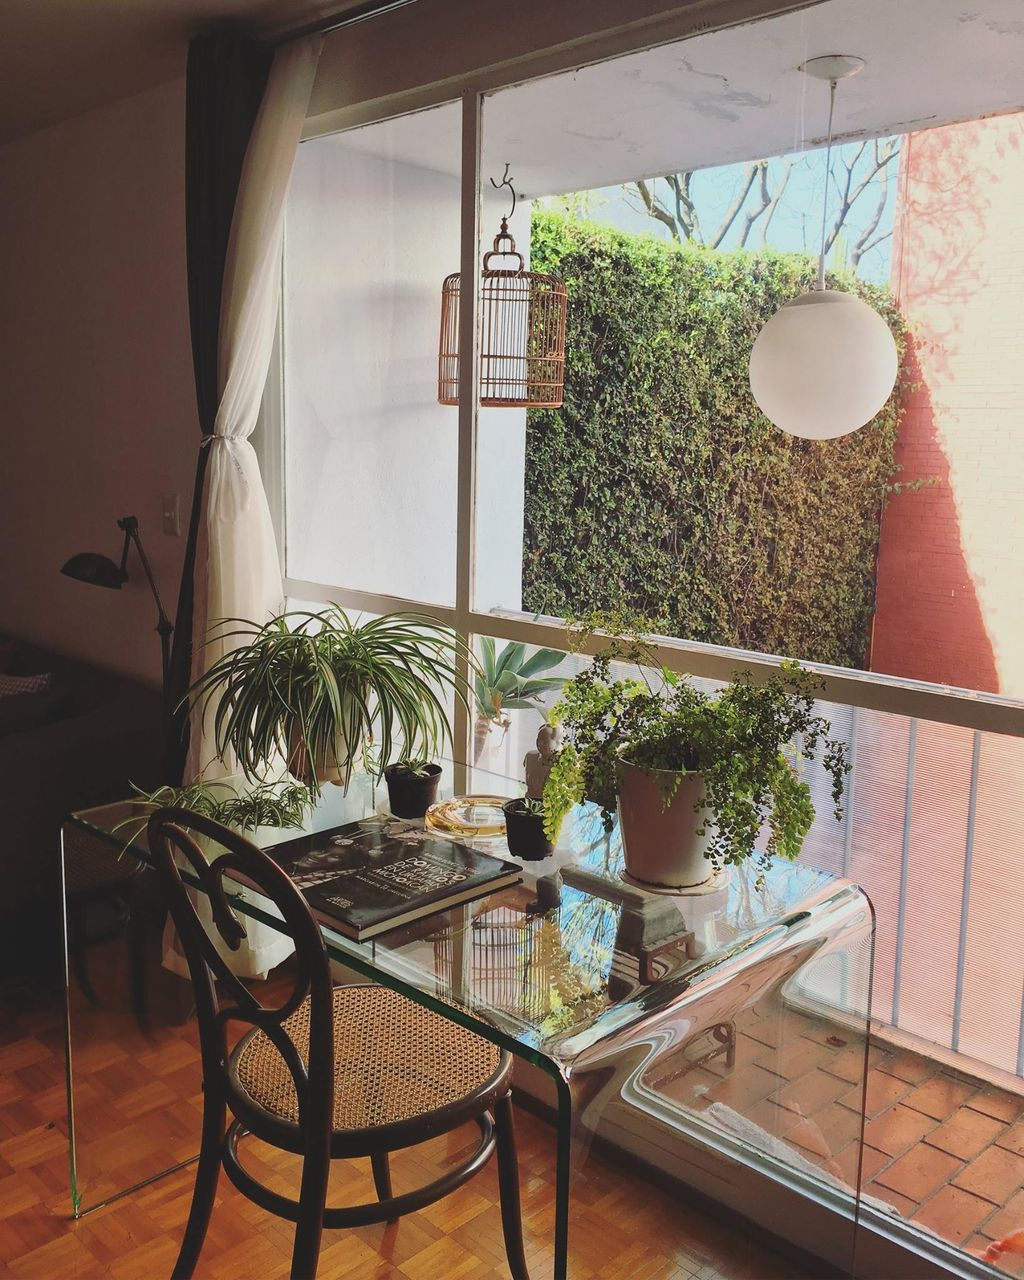 indoors, table, chair, home interior, no people, plant, home showcase interior, day, nature